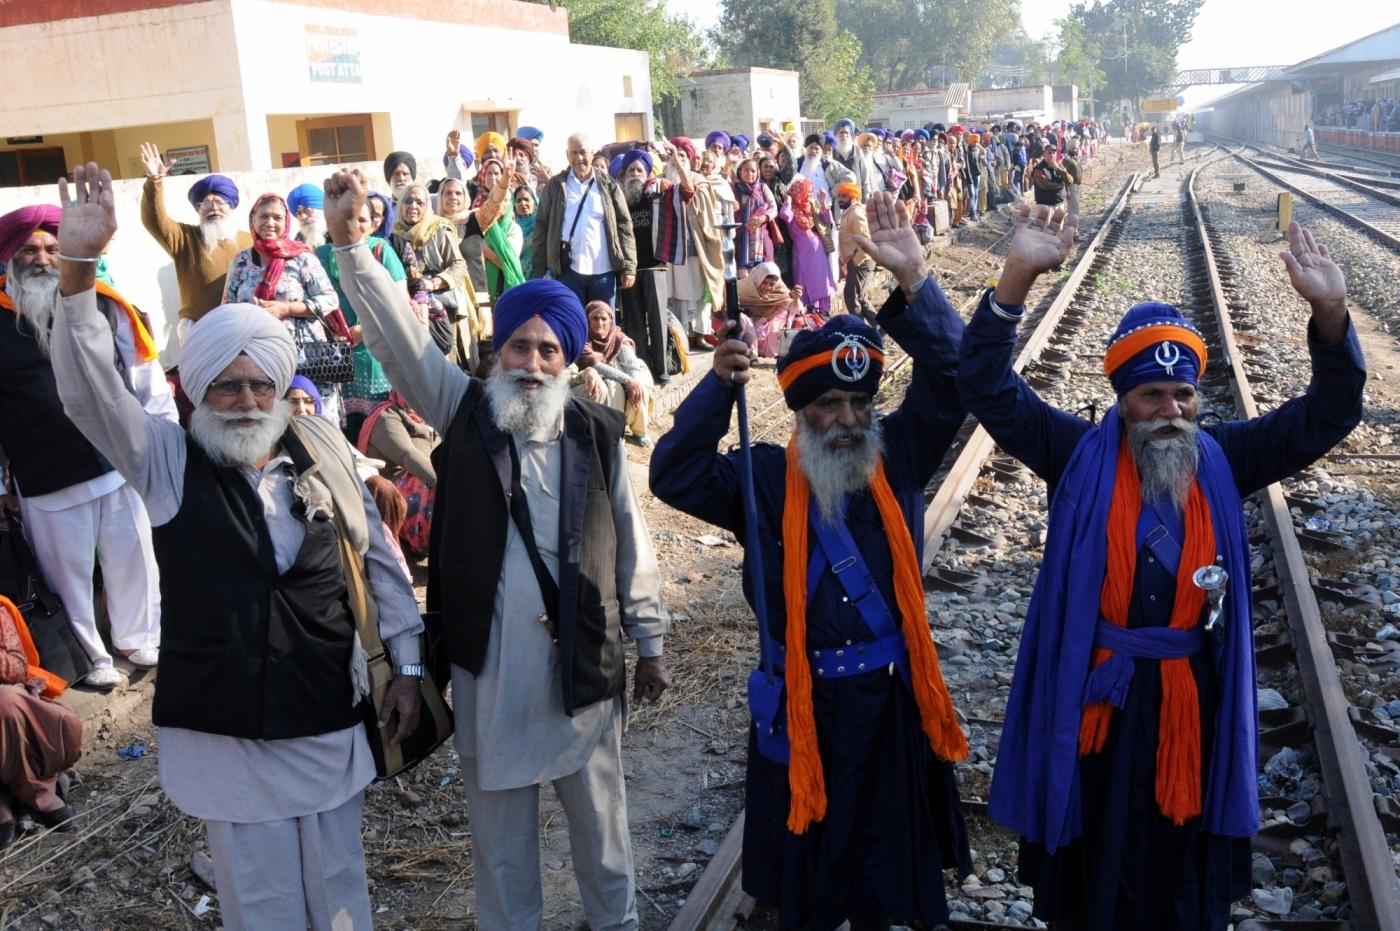 Amritsar: Sikh pilgrims arrive at Attari railway station as they prepare to leave for Pakistan to participate in the birth anniversary celebrations of 1st Sikh Guru, Guru Nanak Dev to be held at Gurdwara Nankana Sahib, on Nov 21, 2018. (Photo: IANS) by .